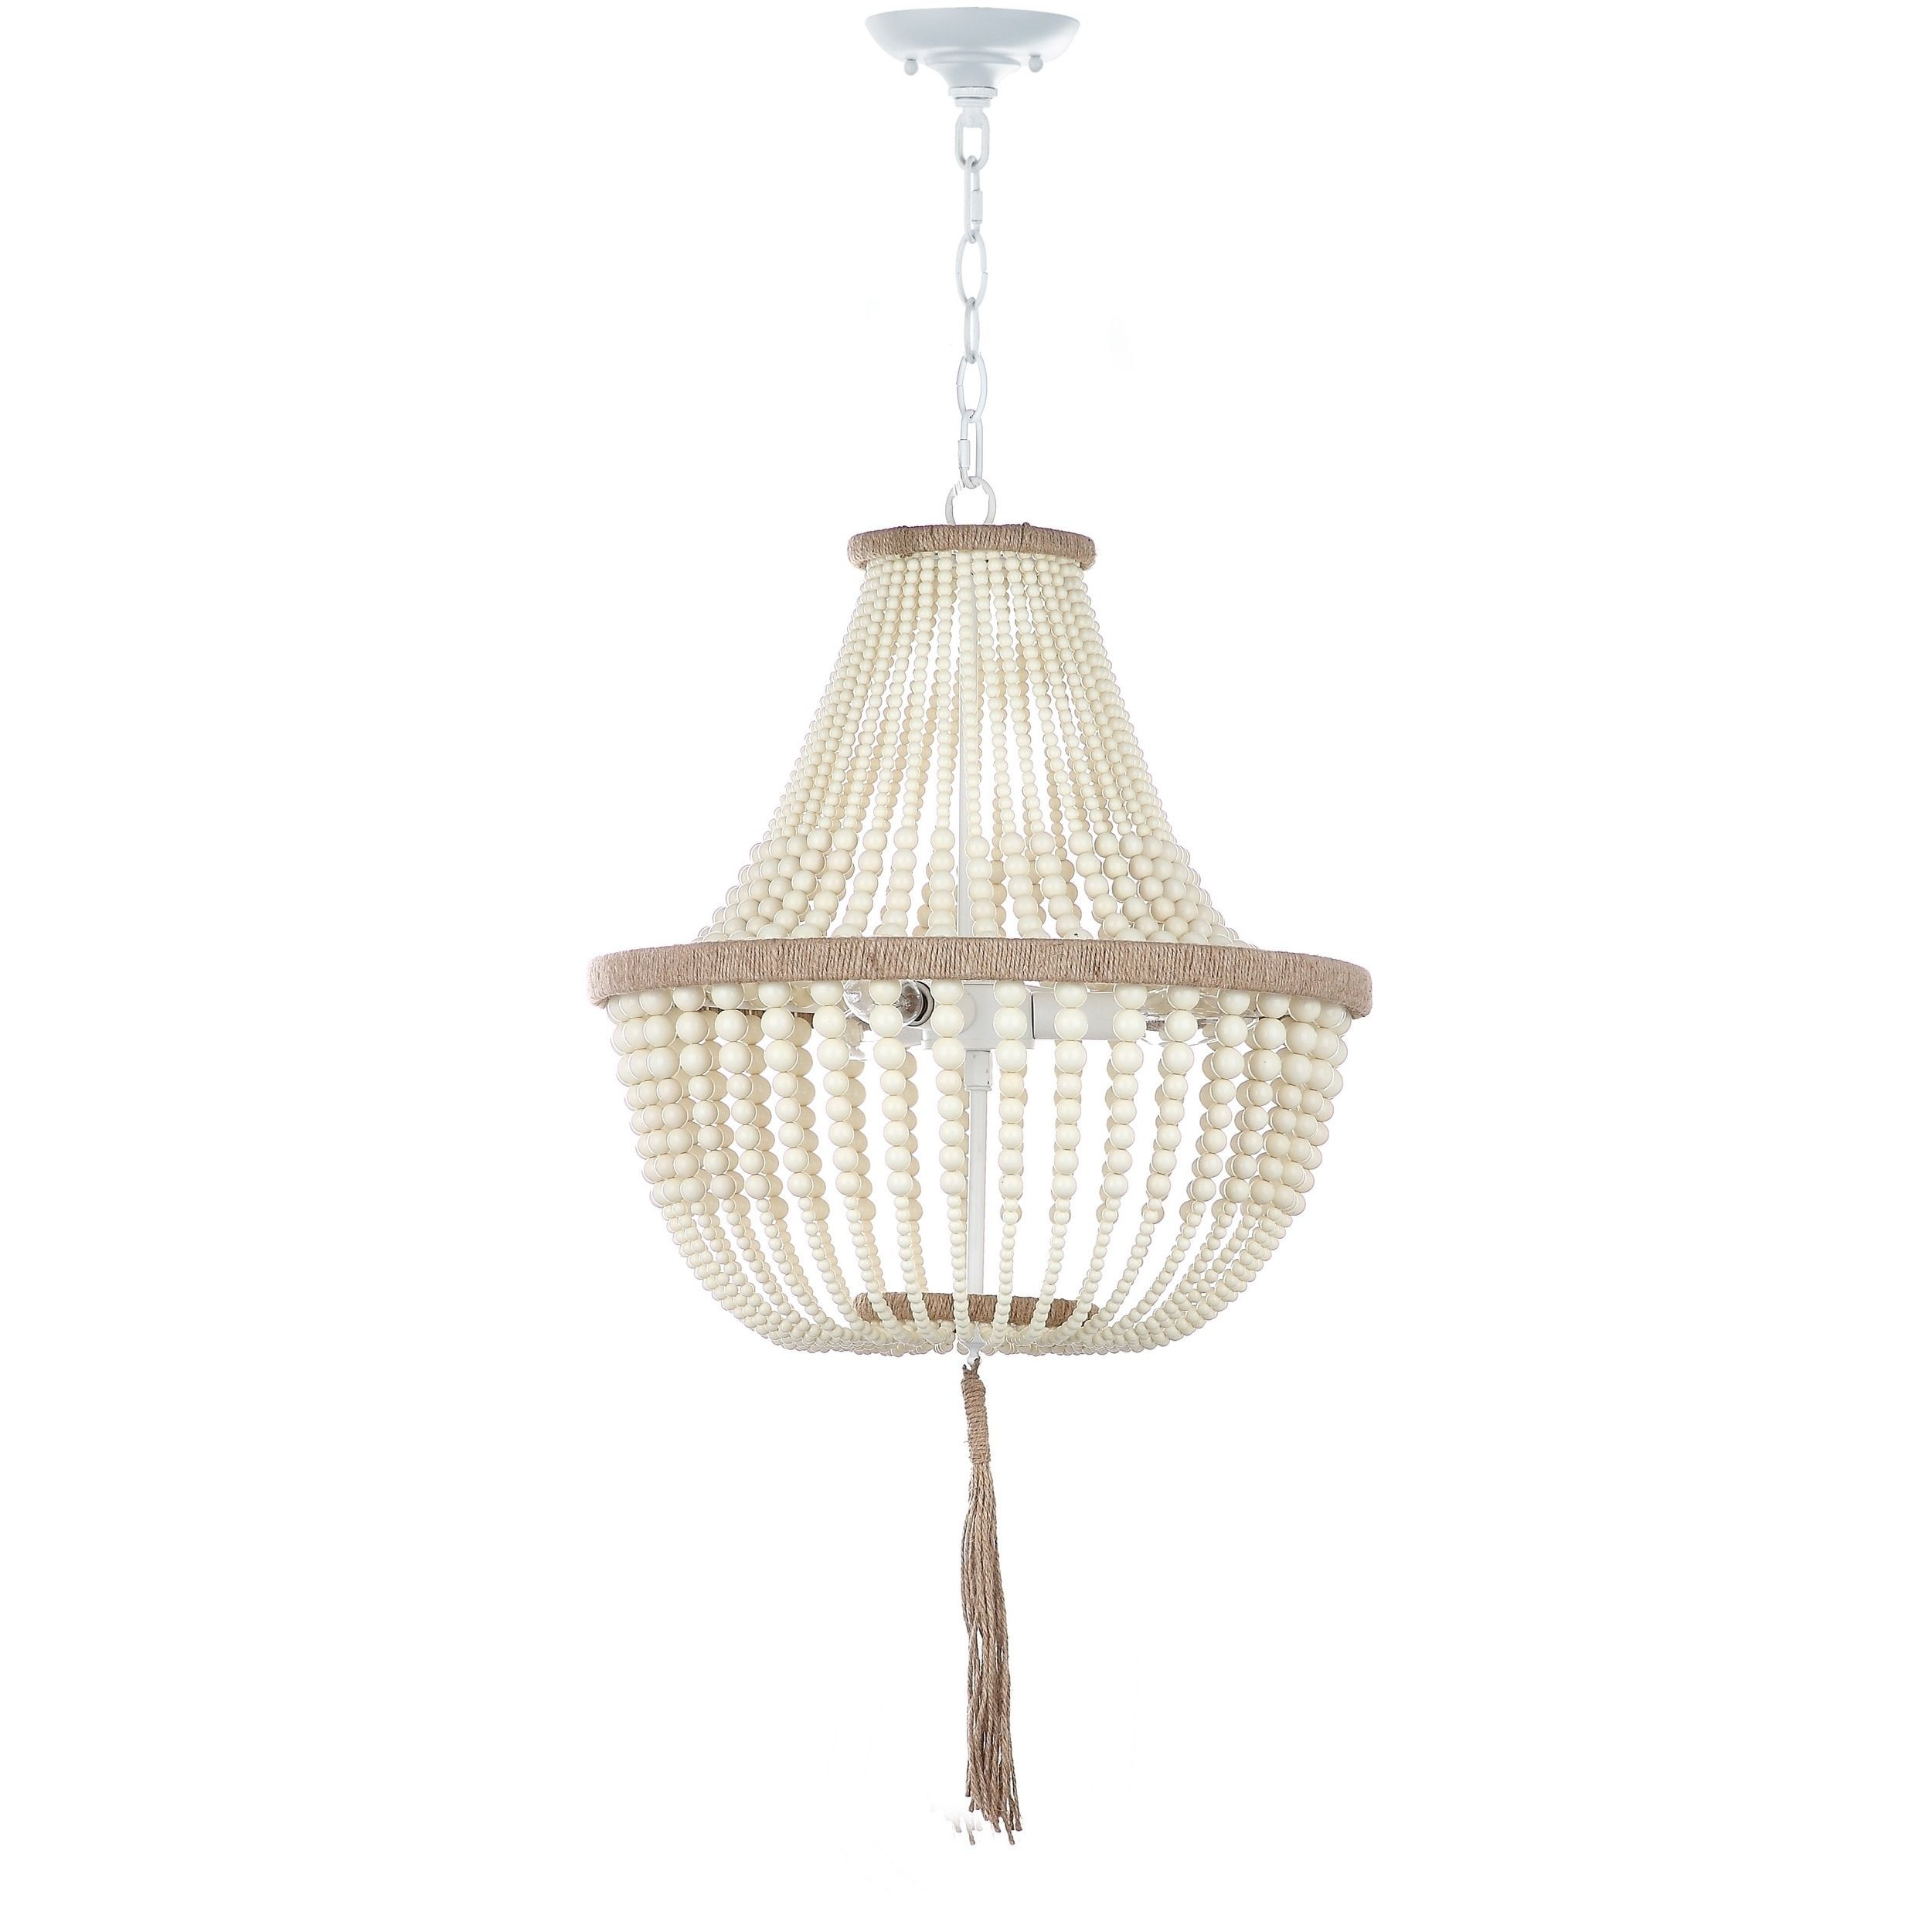 Safavieh lush kristi 3 light 165 inch dia cream beaded pendant overstock online shopping bedding furniture electronics jewelry clothing more arubaitofo Gallery